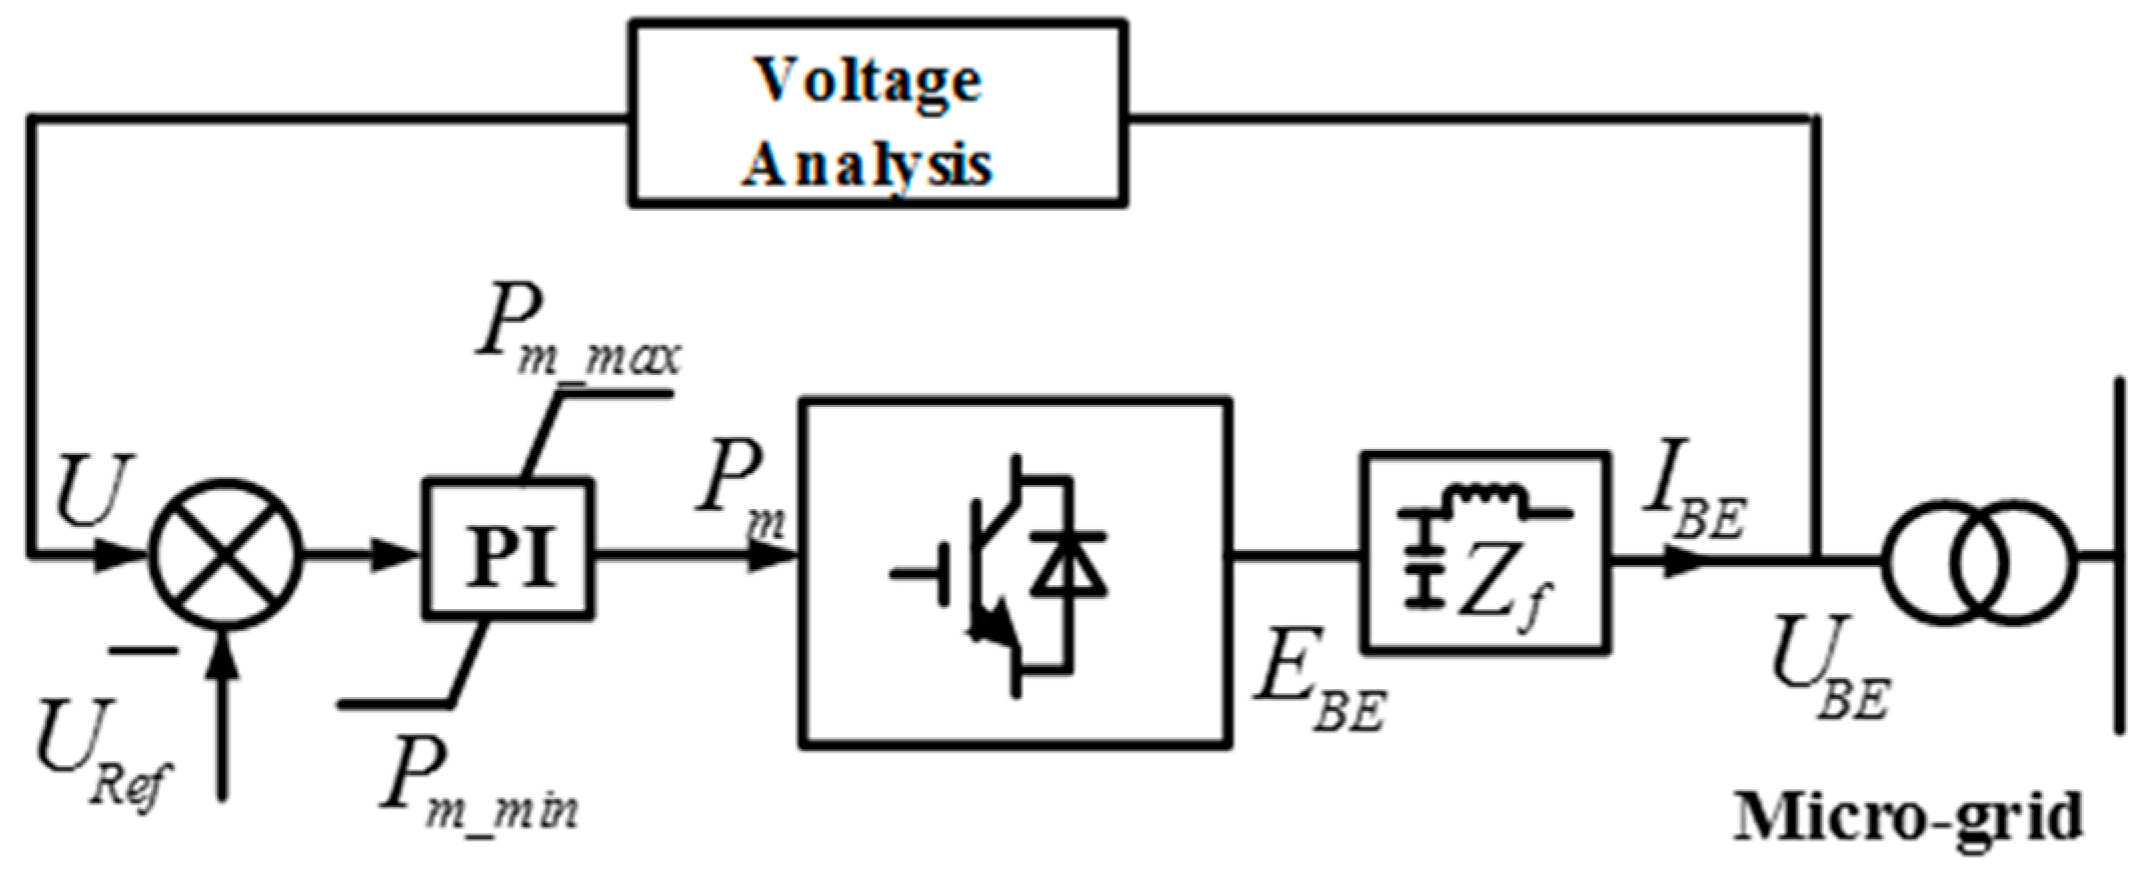 wiring diagram for variable frequency drives wiring discover v f control block diagram v f control block diagram additionally potentiometer wiring diagram vfd additionally on wiring diagram for variable frequency